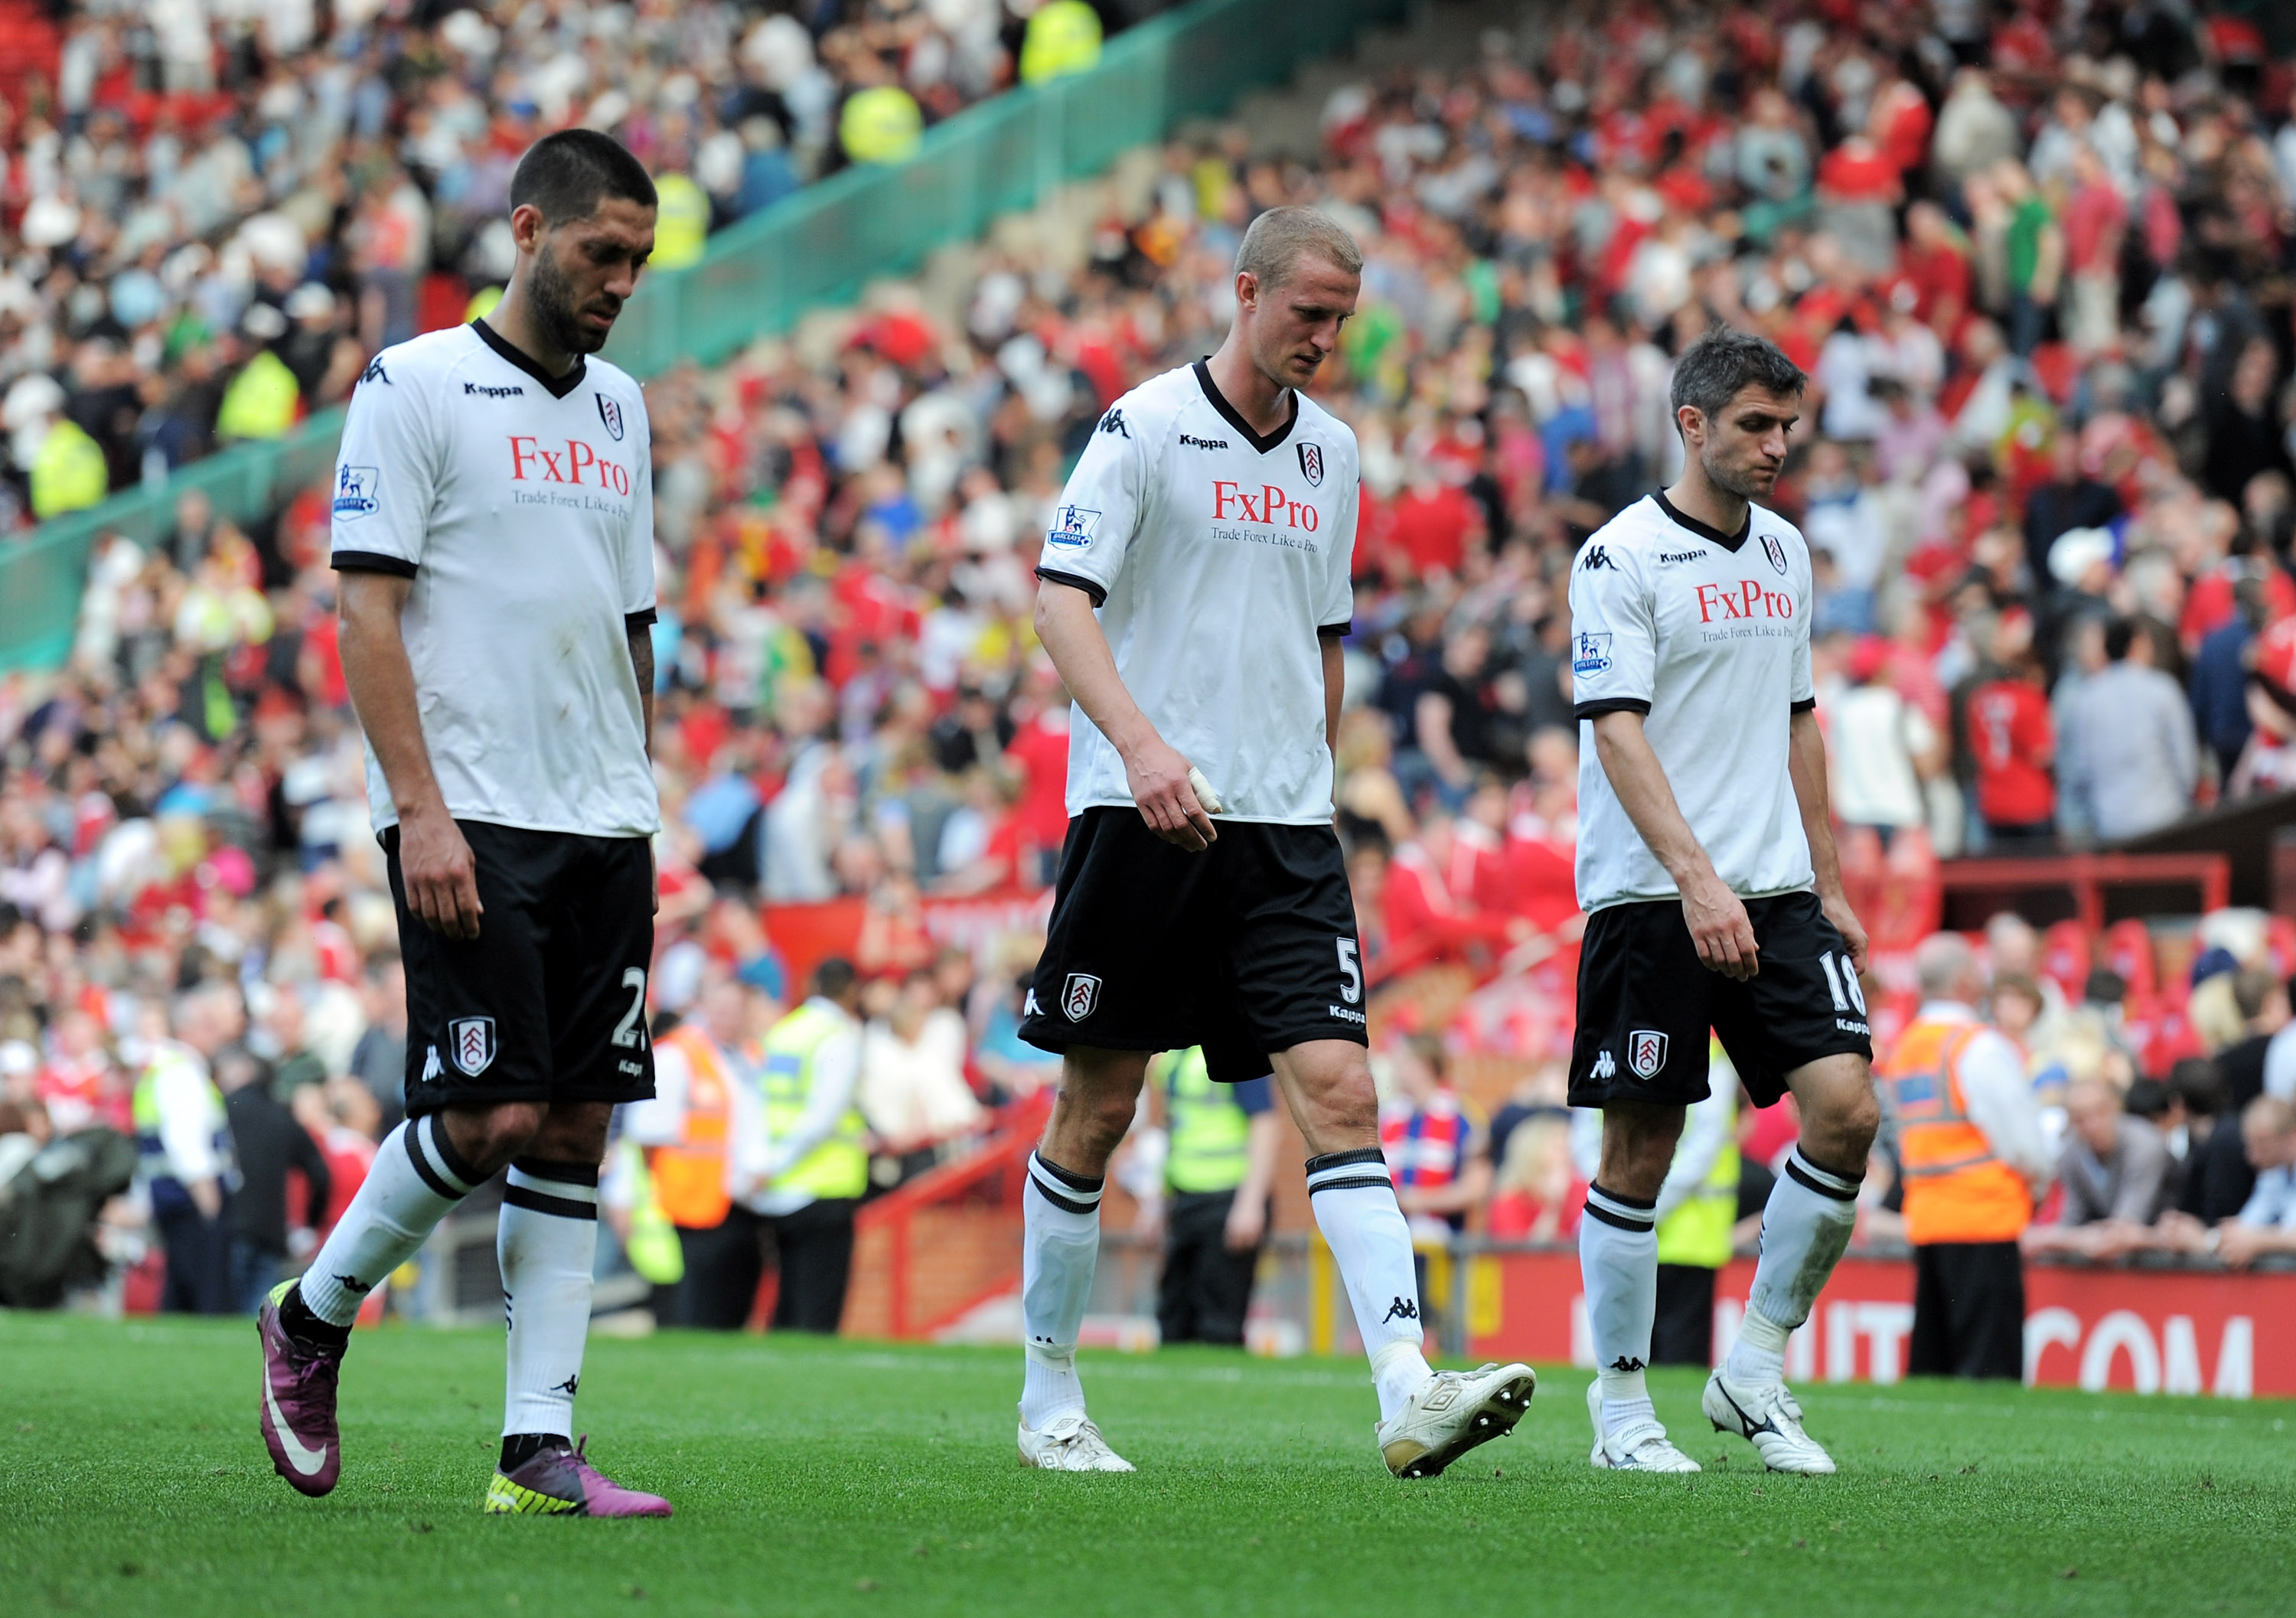 MANCHESTER, ENGLAND - APRIL 09: Brede Hangeland (C) of Fulham walks off dejected with Clint Dempsey (L) and Aaron Hughes after the Barclays Premier League match between Manchester United and Fulham at Old Trafford on April 9, 2011 in Manchester, England.